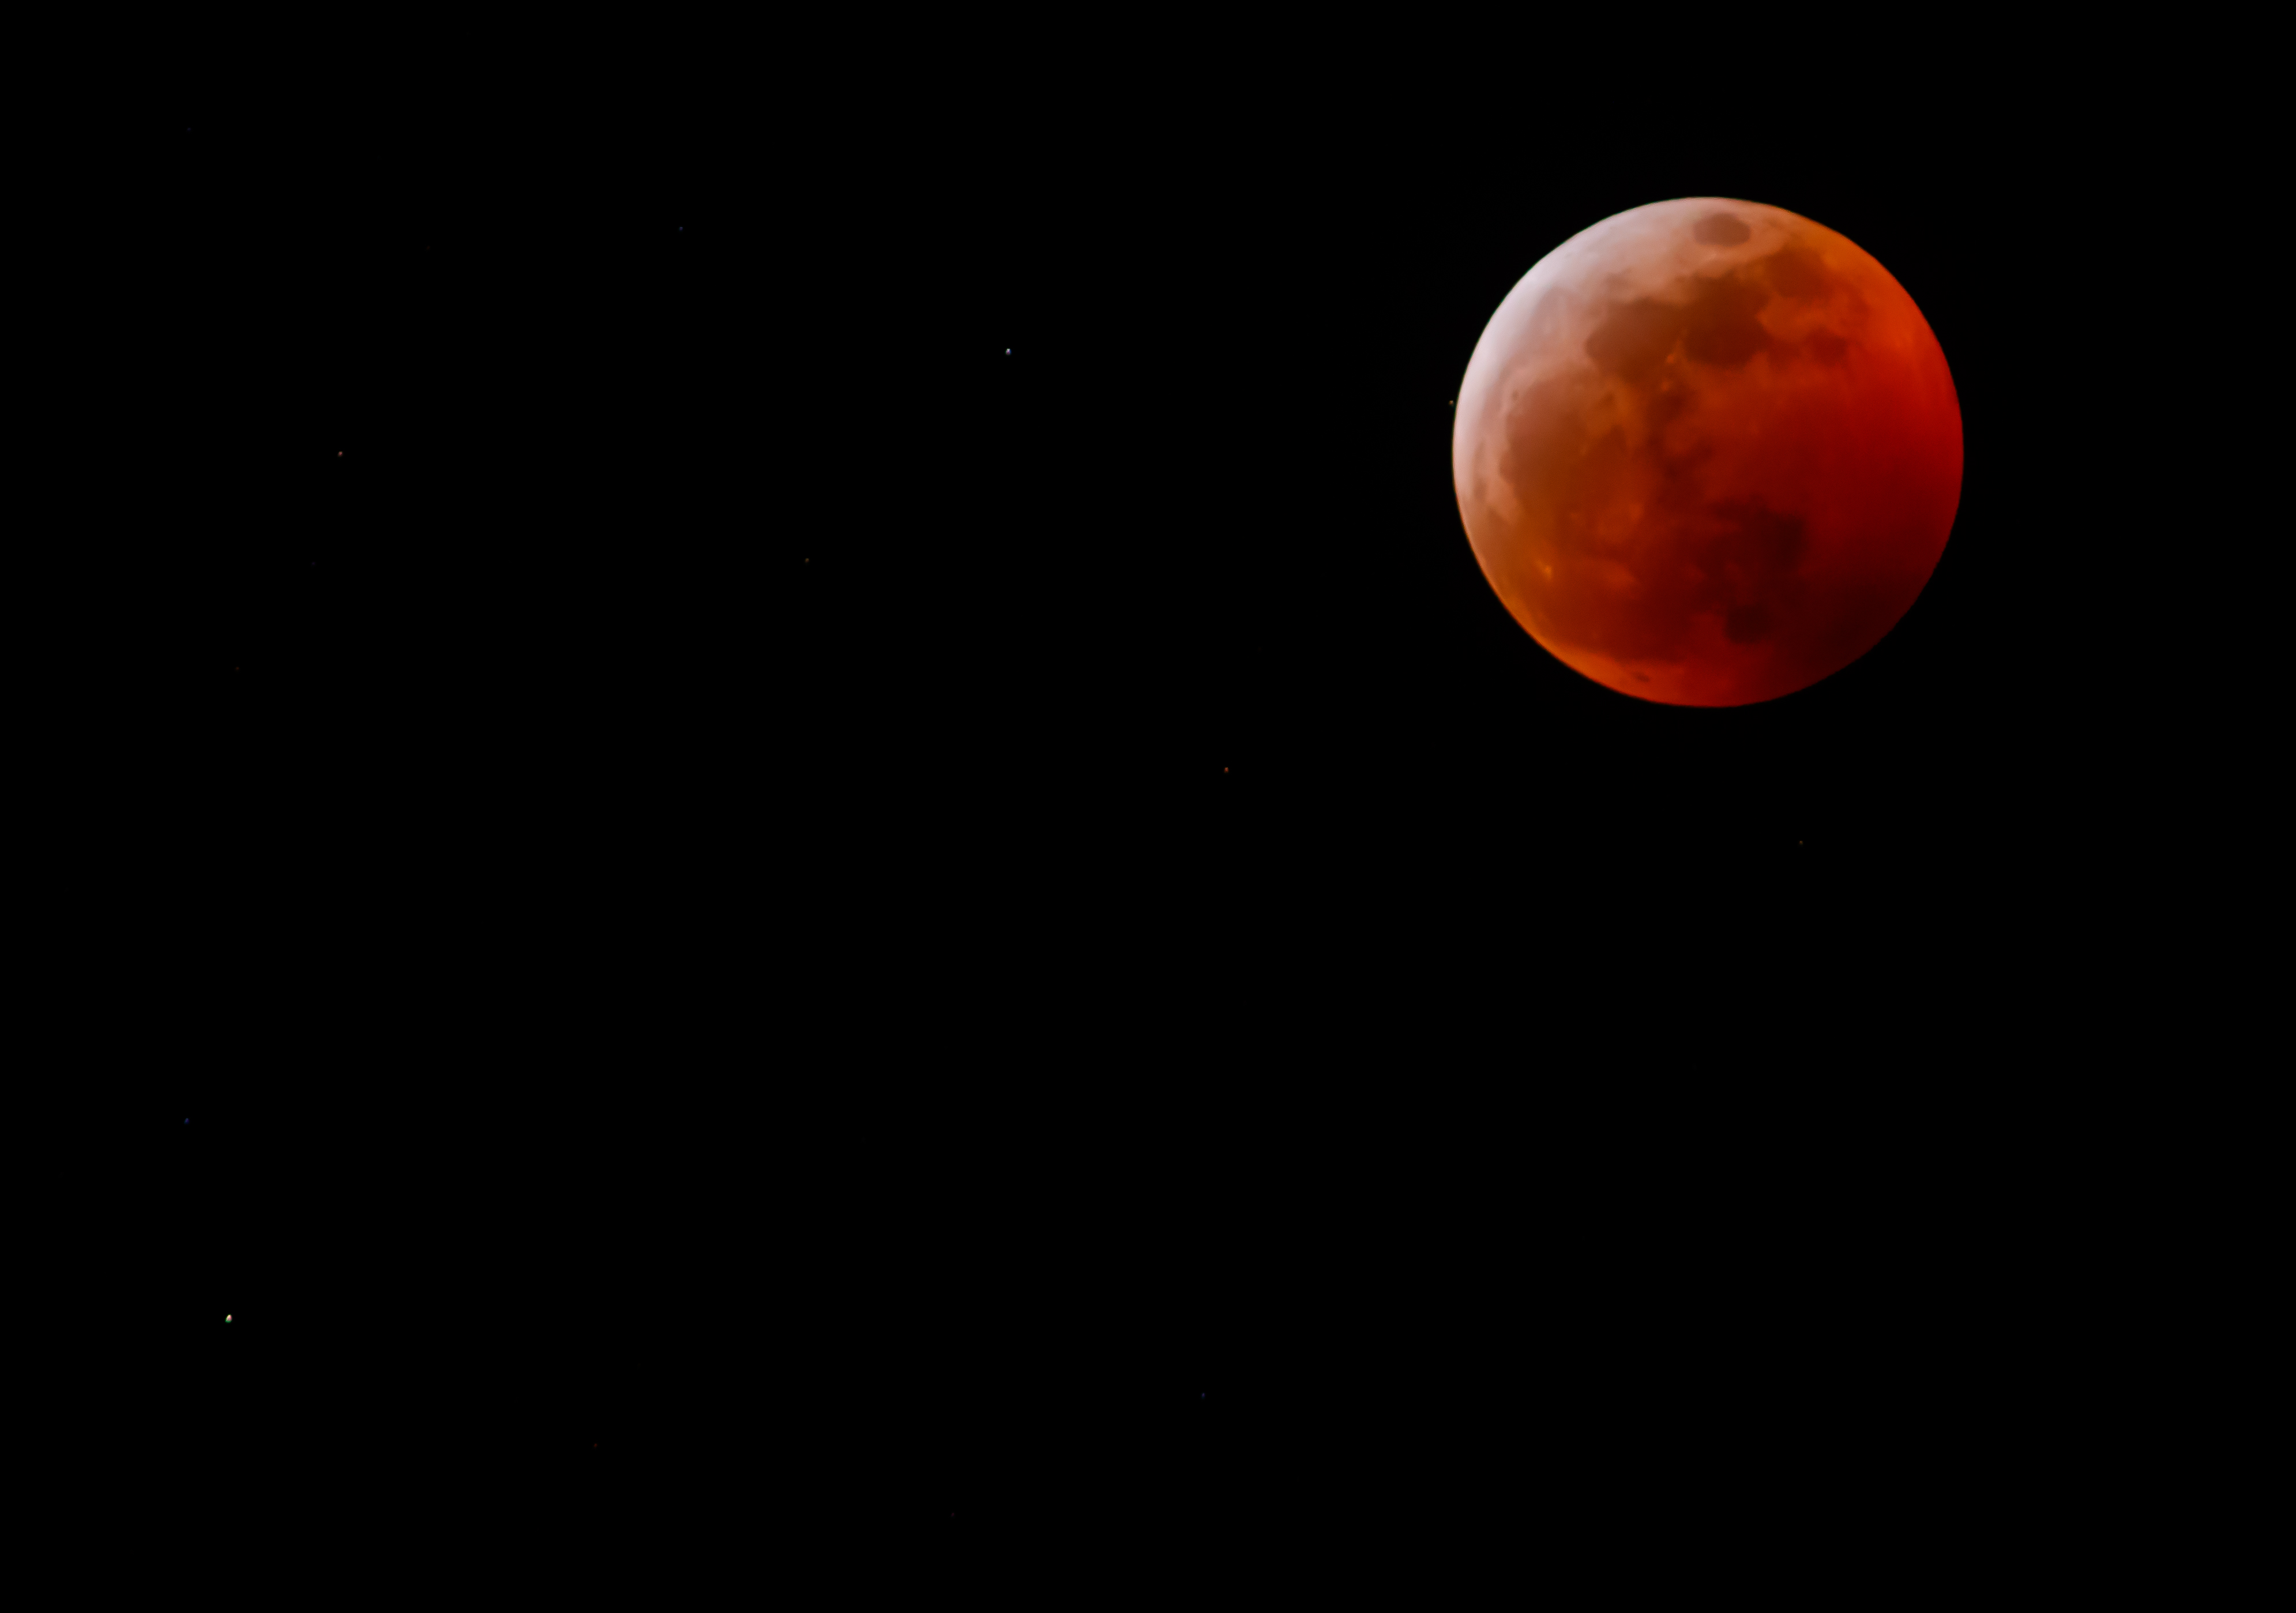 blood moon eclipse january 2019 - photo #19